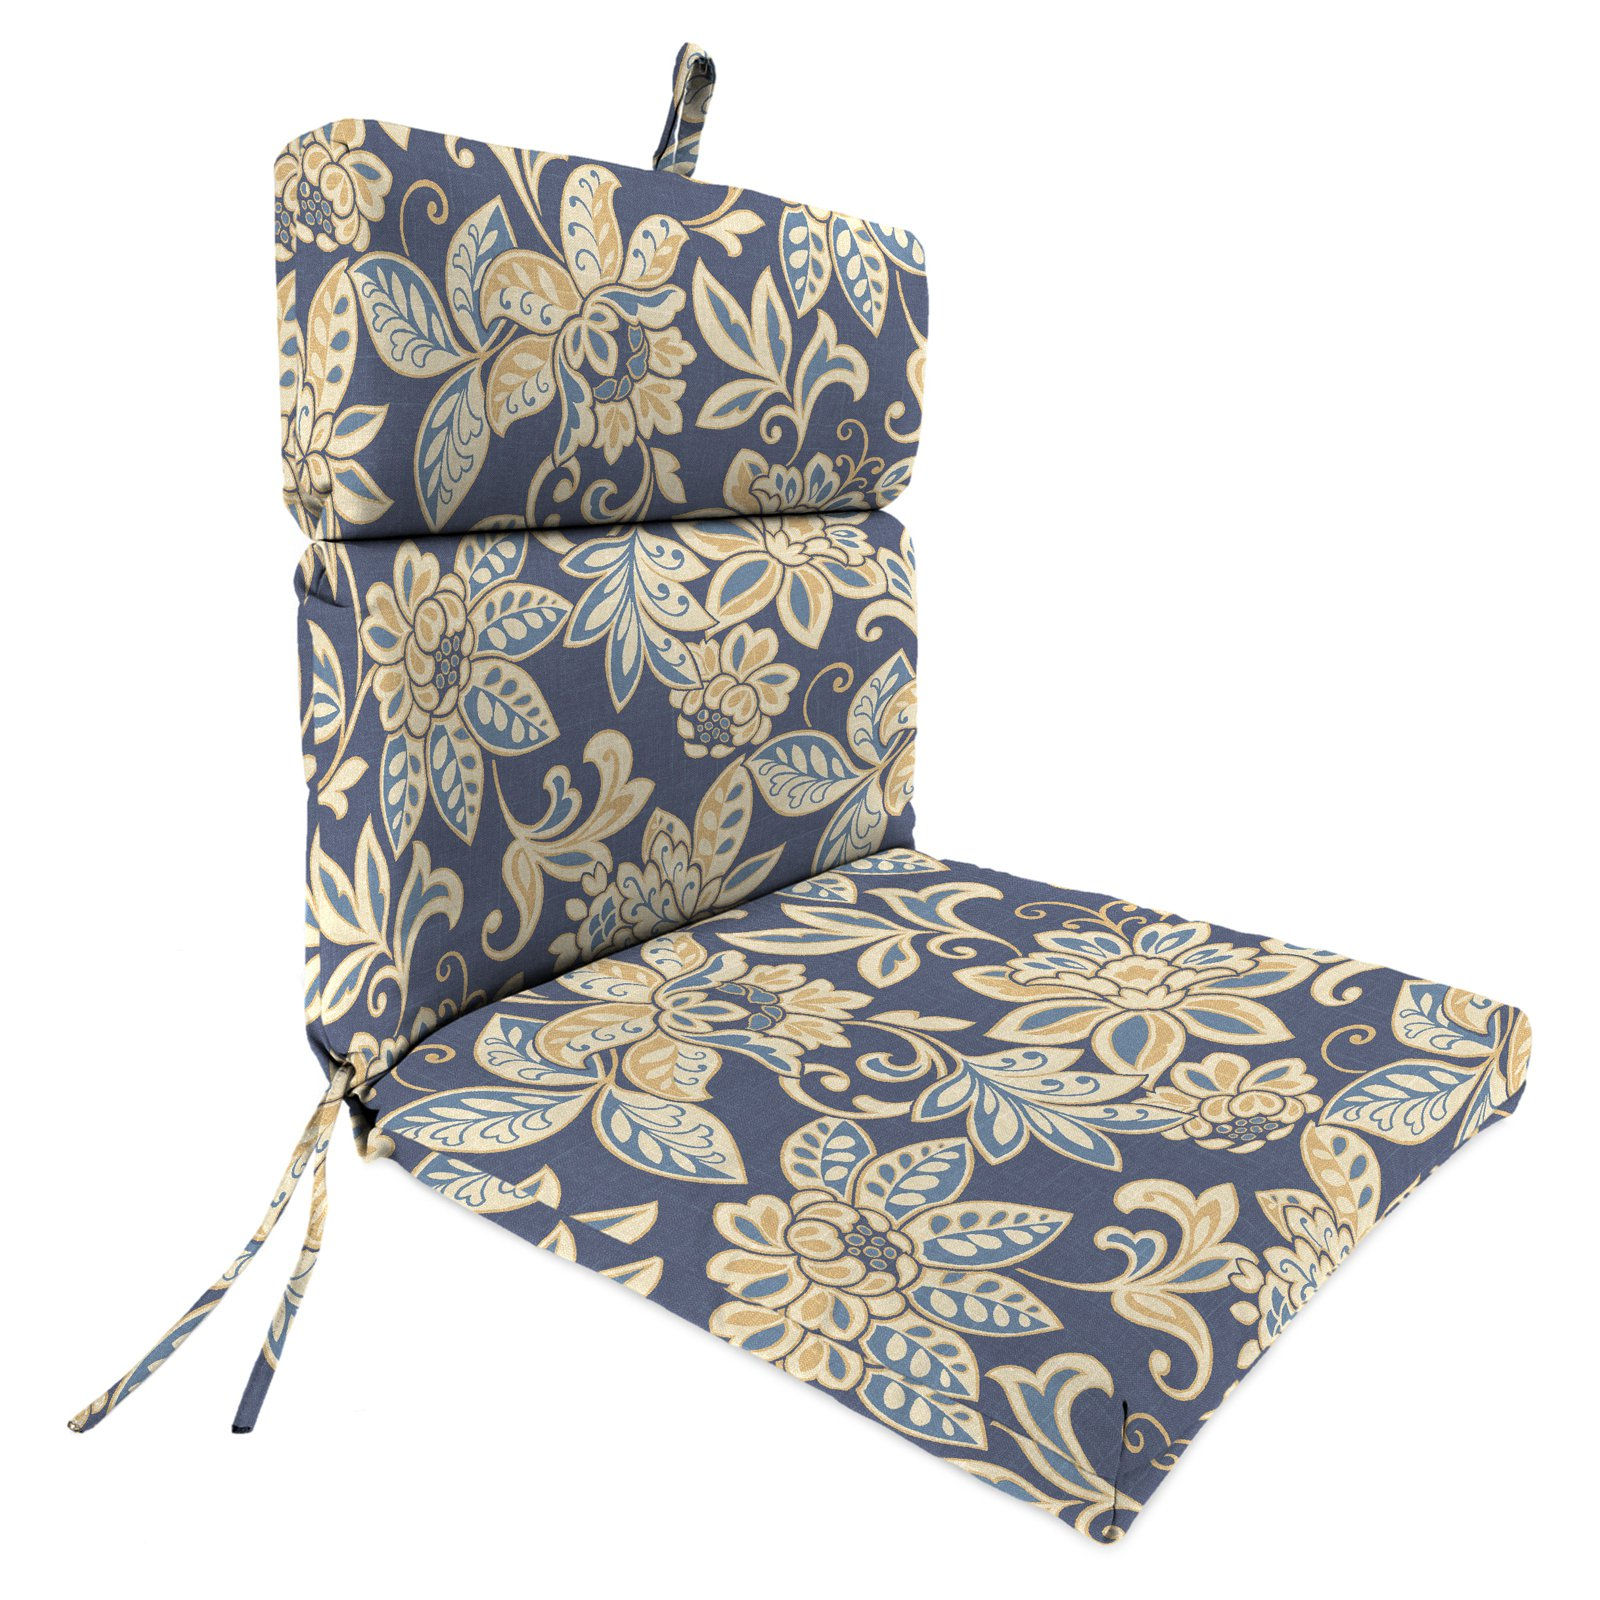 patio chair cushions outdoor high back patio chair cushion - outdoor cushions at hayneedle FWQQZES